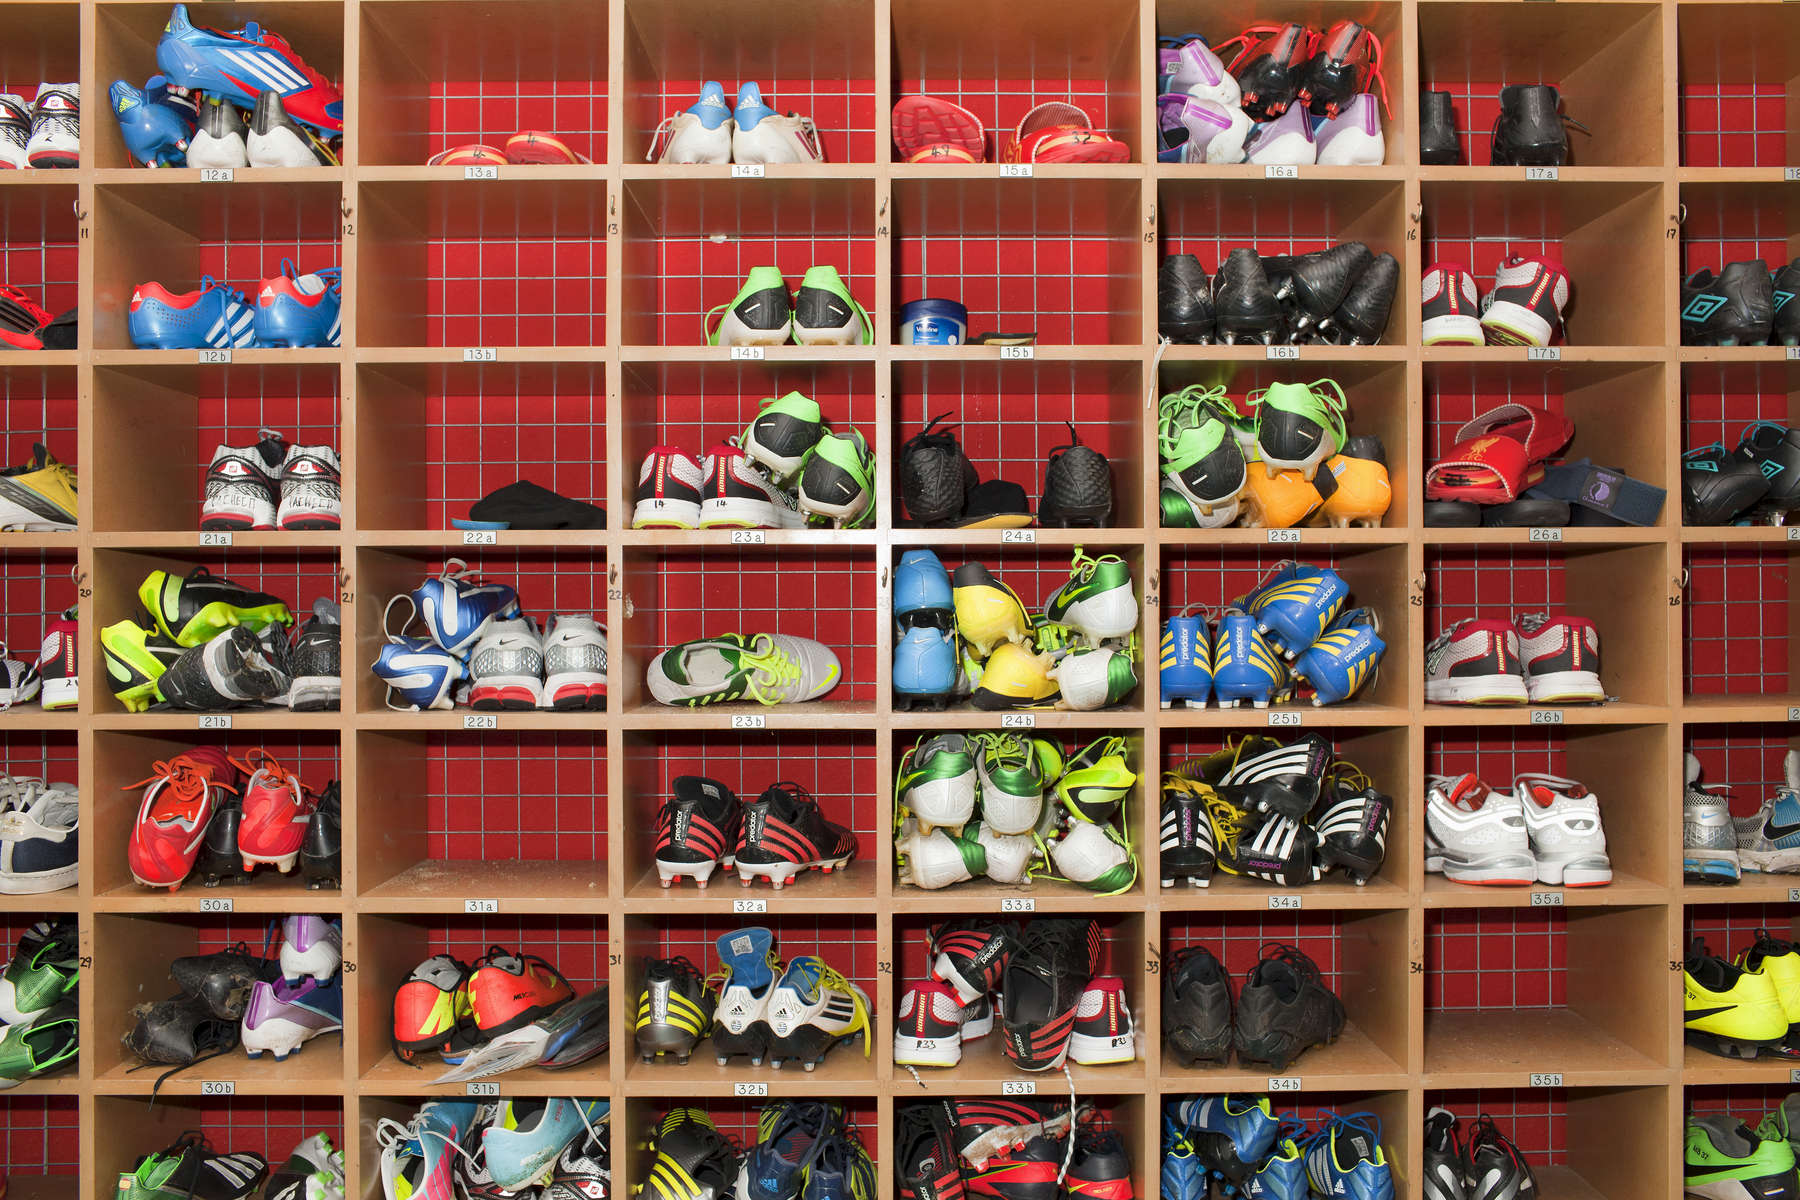 Liverpool FC players boots at Melwood.Melwood is the Liverpool FC training ground, located in the West Derby area of Liverpool. It is seperate from the Liverpool Academy, which is based in Kirkby.Melwood was redeveloped in the early 2000′s with large input from then-manager Gerard Houllier and now features some of the best facilities in Europe. It has been the club's training ground since the fifties and was previously transformed into a top class facility by Bill Shankly.Facilities include sythetic pitches, rehabilitation rooms, press and meeting rooms, gymnasium, swimming pool, restaurant and recreational facilities.